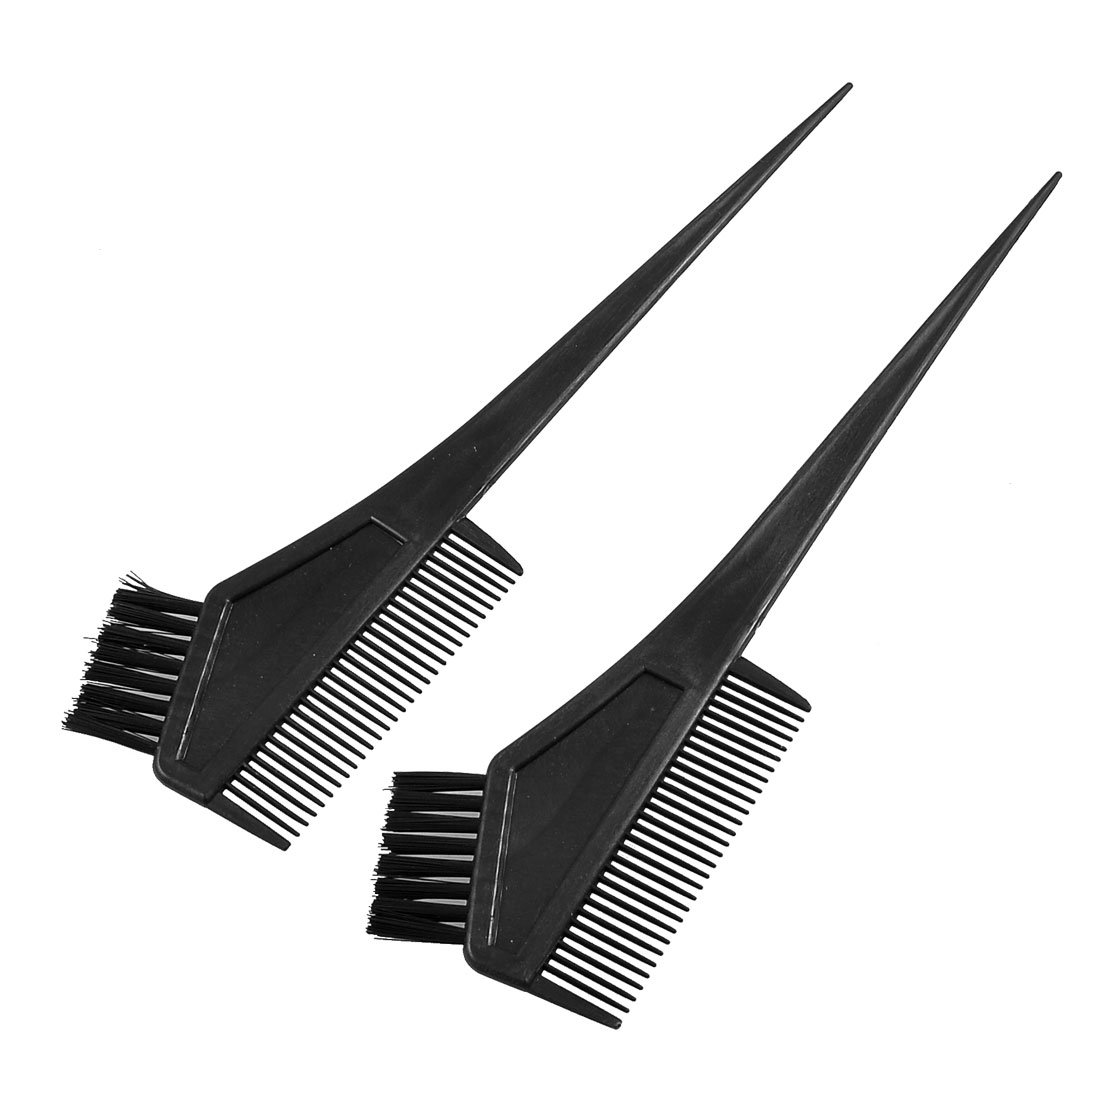 uxcell Plastic Straight Bristle Synthetic Hair Dye Tint Color Coloring Brush Comb Black 2 Pcs a12092400ux1237